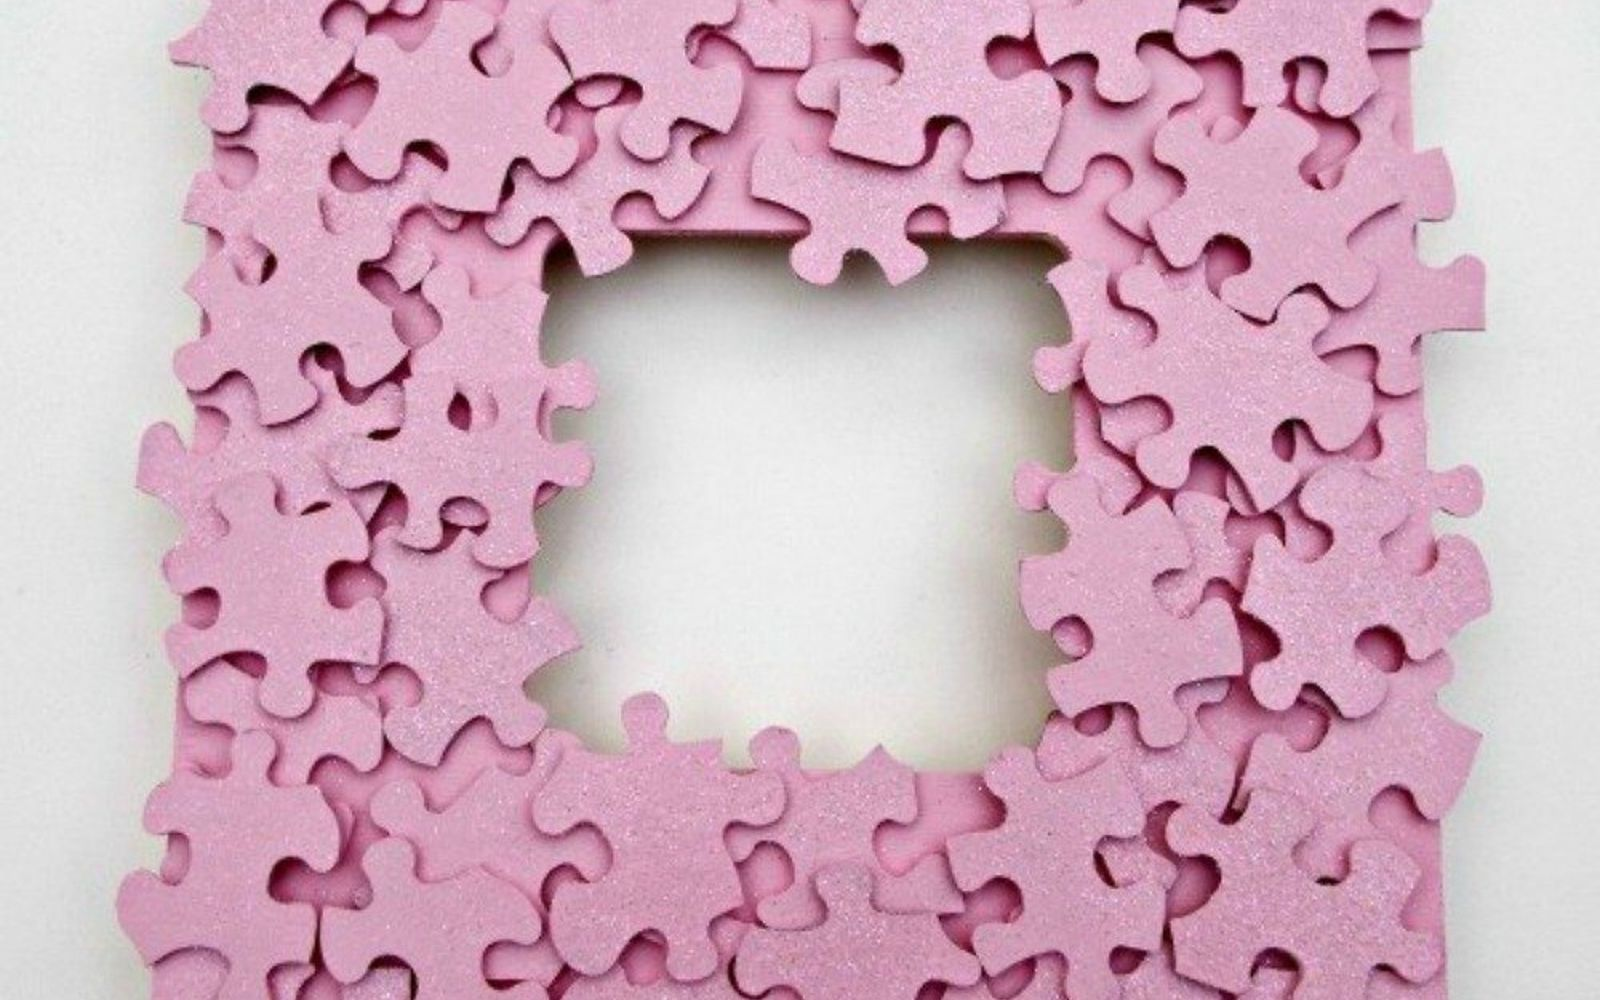 s 20 heartfelt valentine s day gifts for under 20, seasonal holiday decor, valentines day ideas, Or make a puzzle piece picture frame